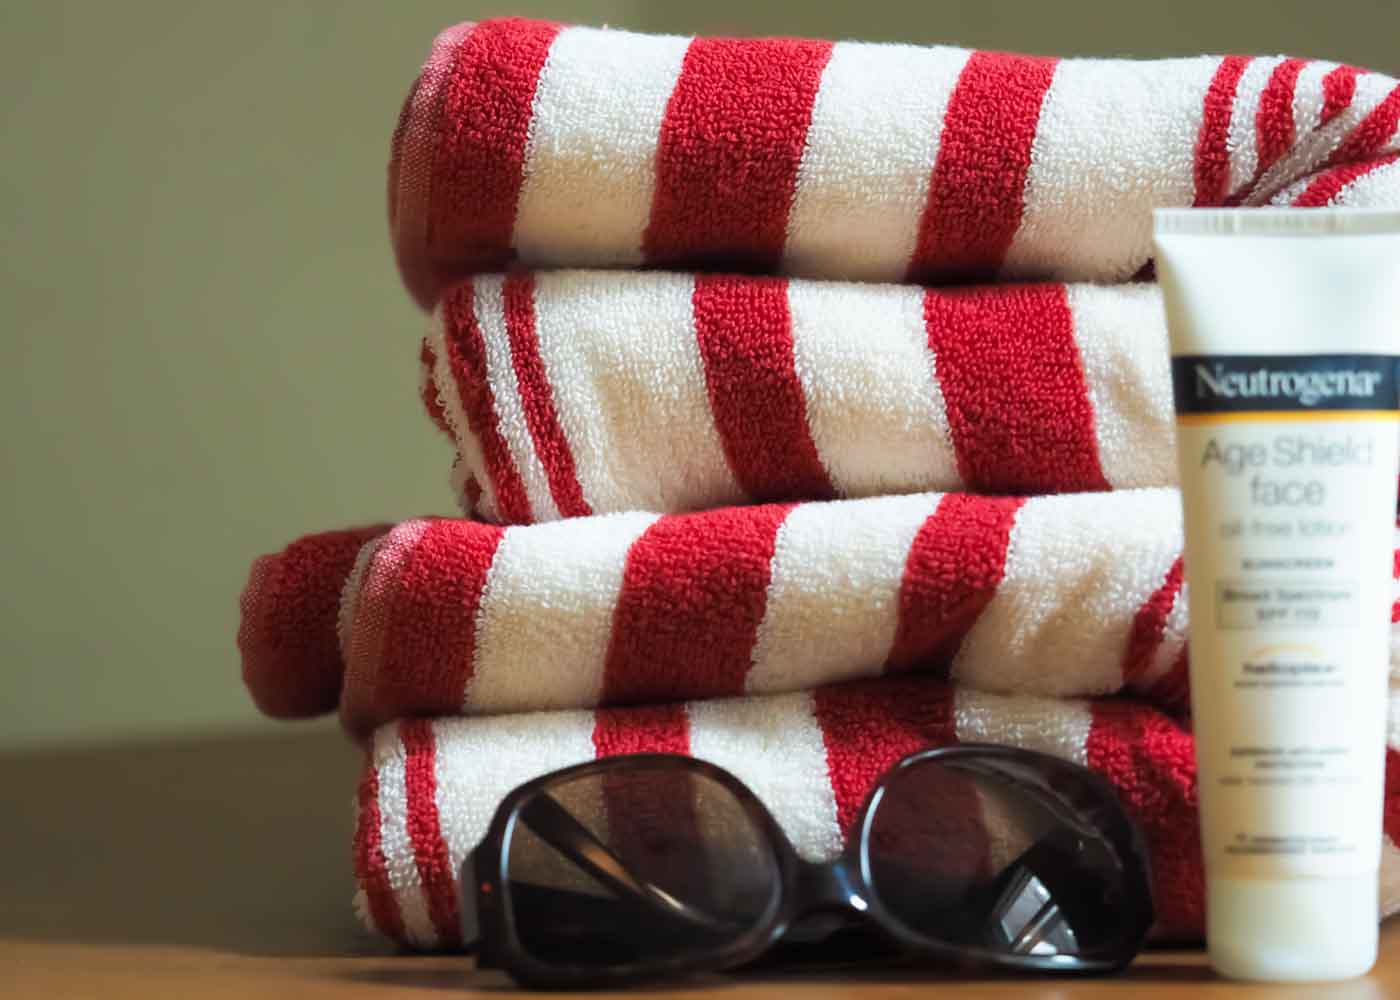 A stack of fluffy towels rarely goes amiss gift-wise.